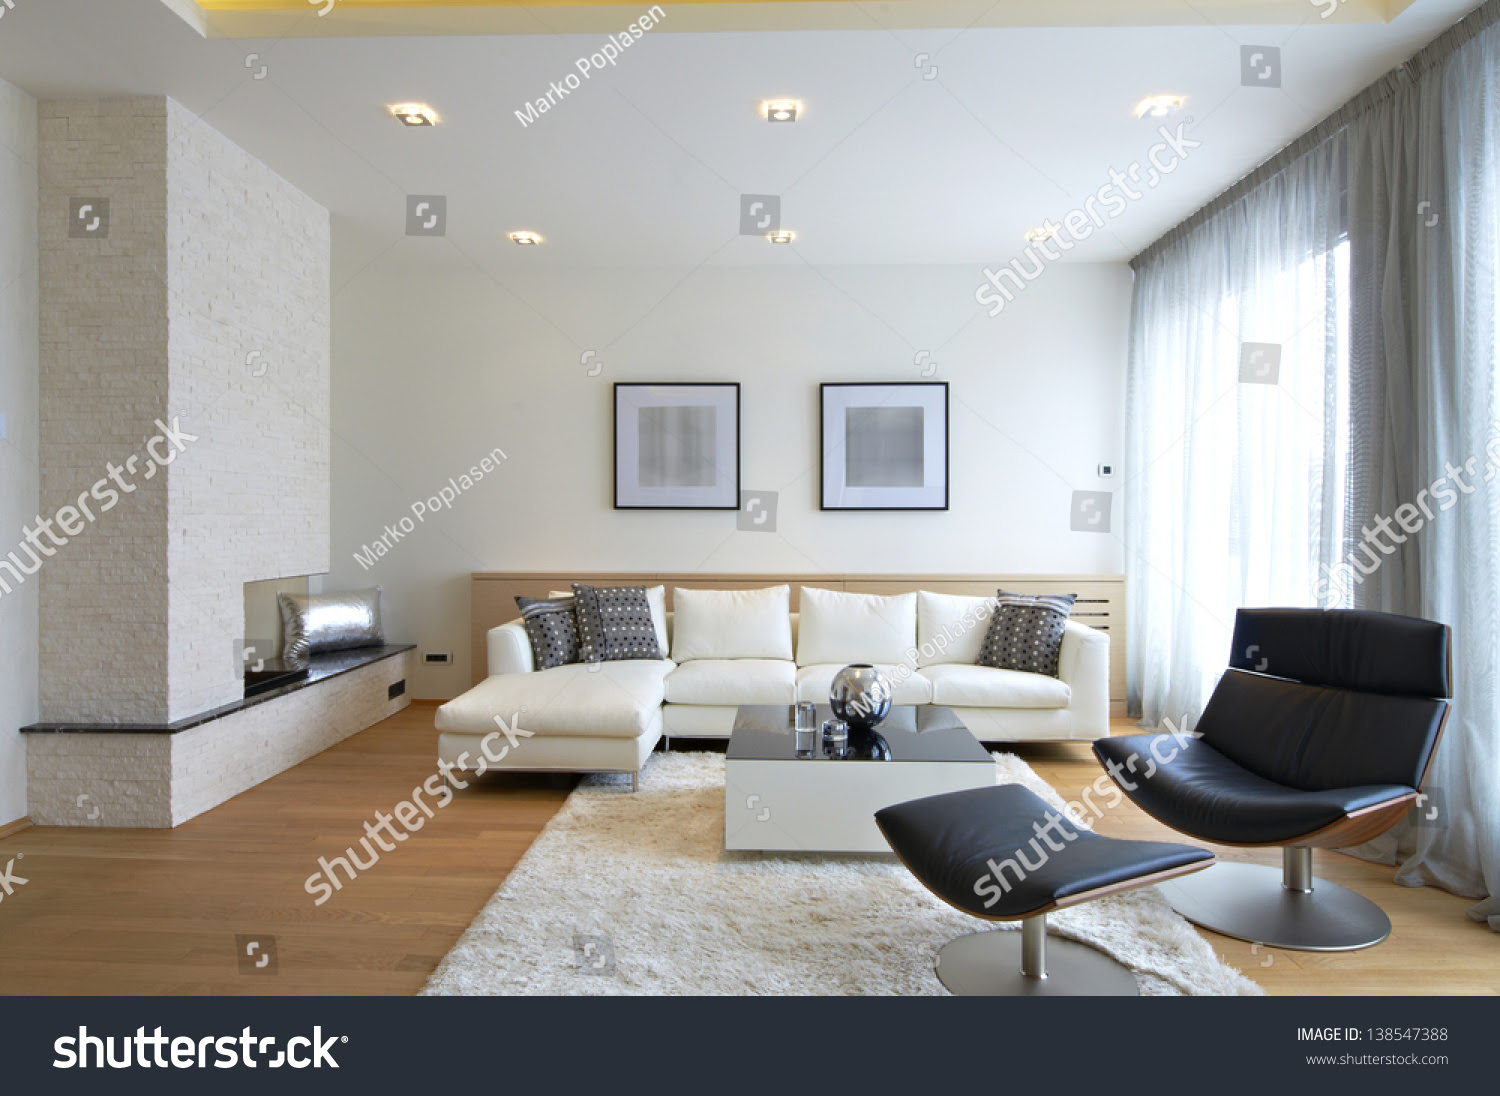 Modern Interior Design Stock Photos - Image: 8562883